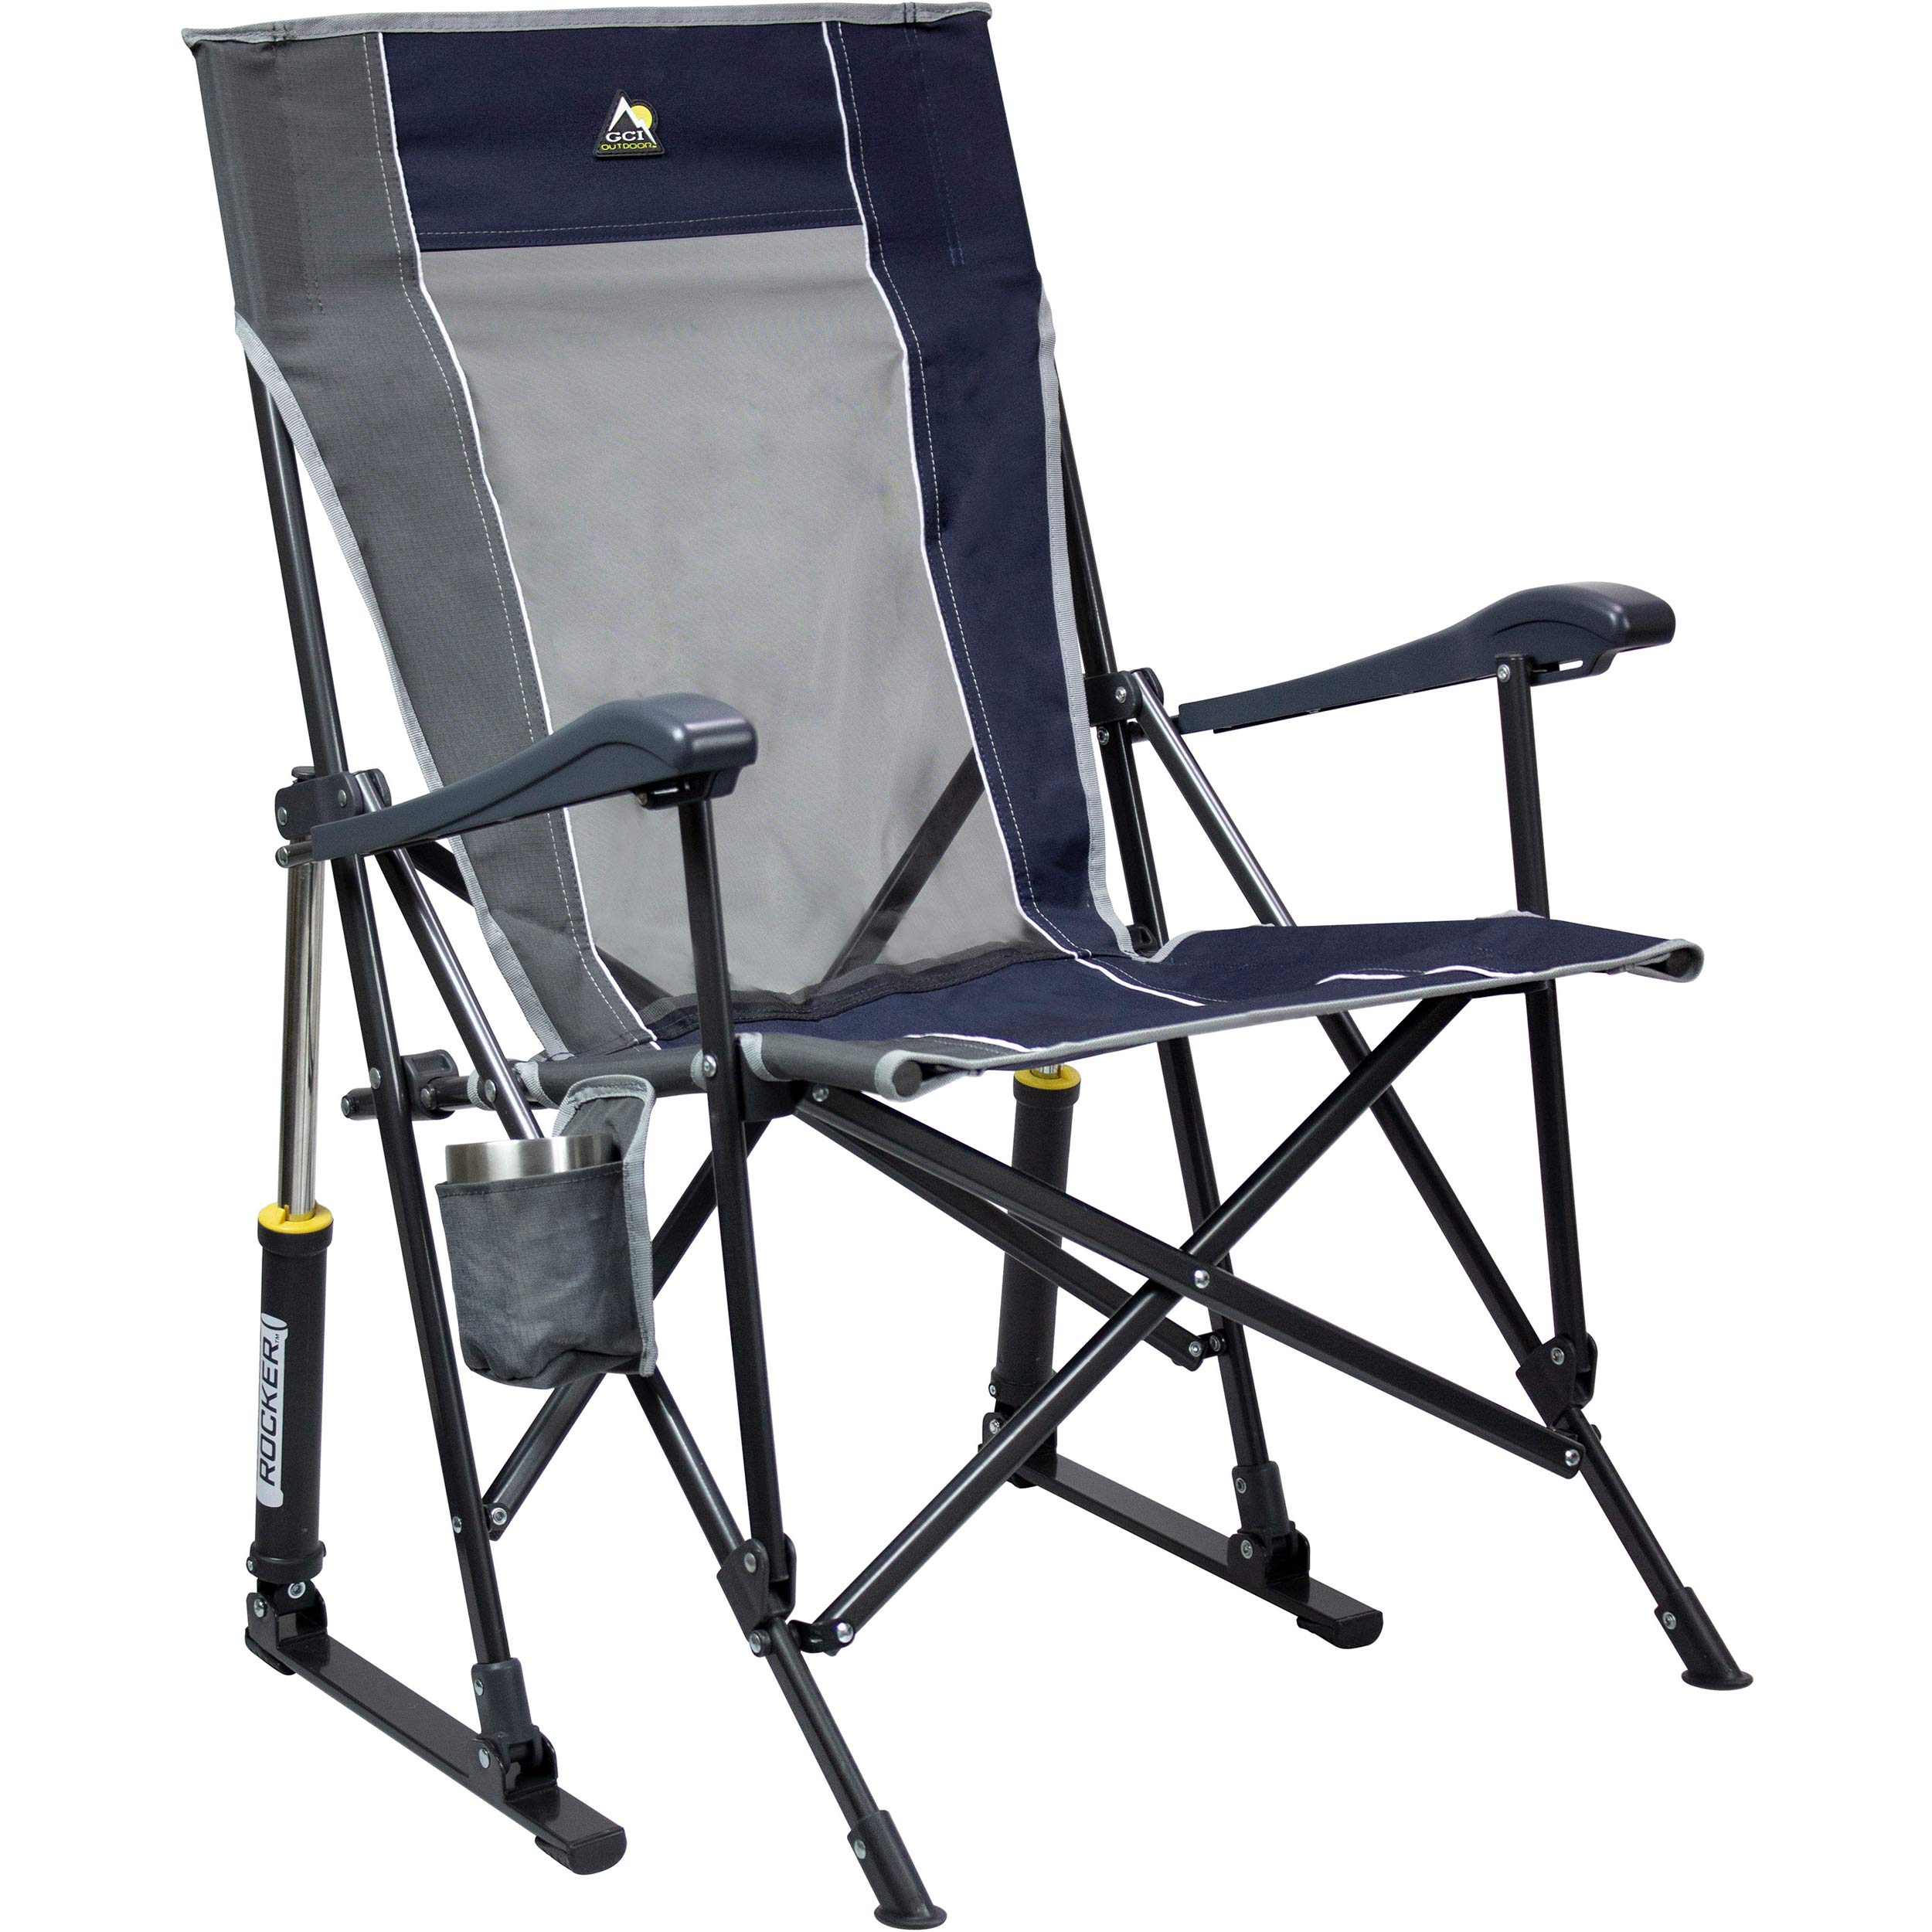 GCI Outdoor Roadtrip Rocker Outdoor Rocking Chair by GCI Outdoor